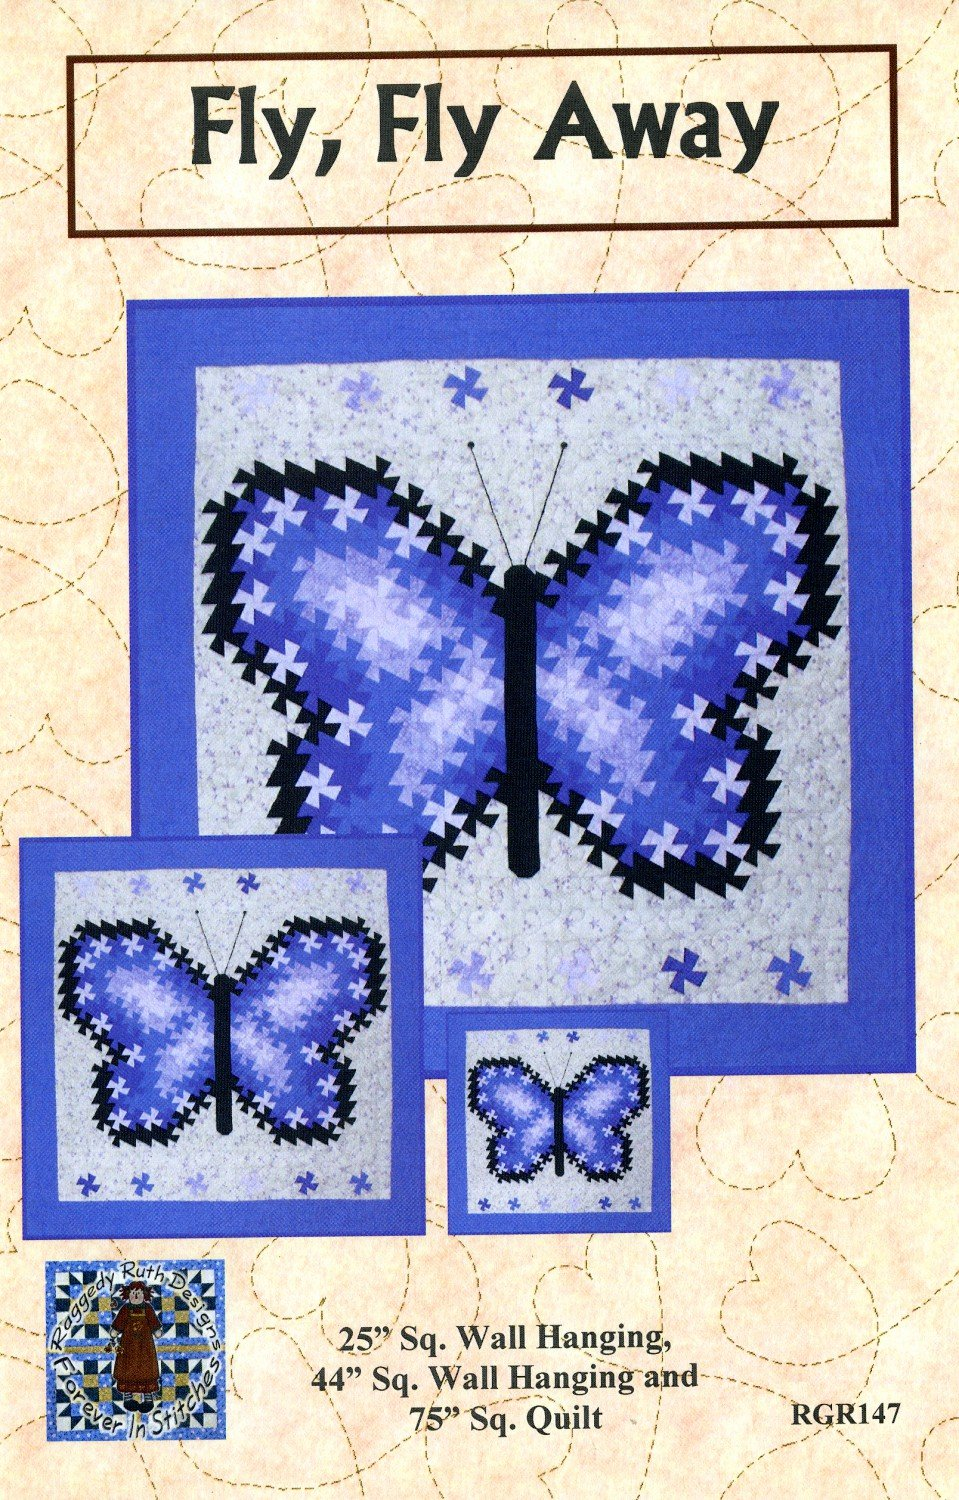 Fly Fly Away Twister Wallhanging Pattern in 3 Sizes by Raggedy Ruth Designs